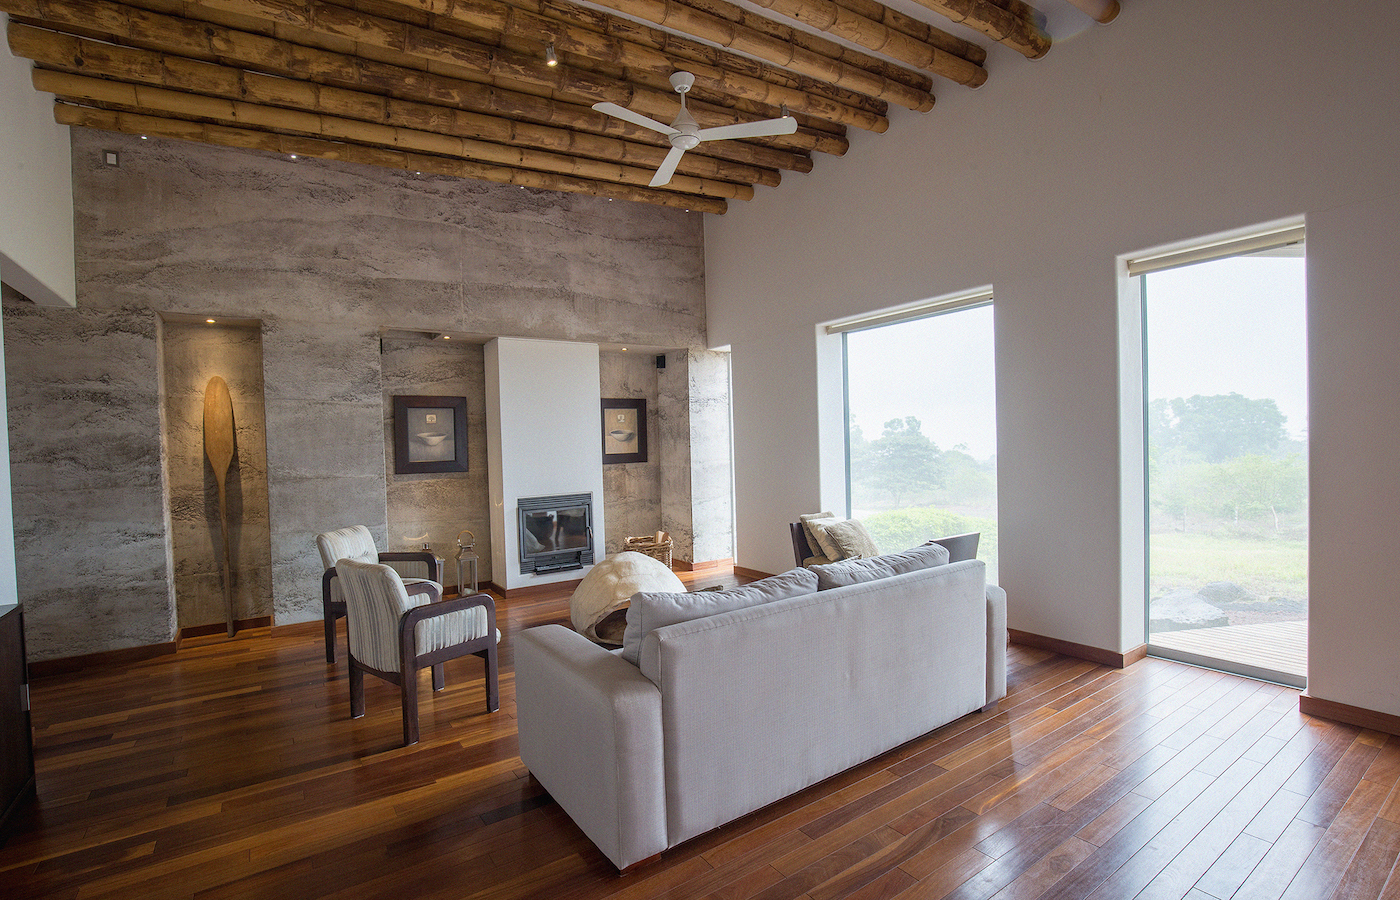 Interiors of the Montemar Eco Luxury Villas - Luxury holidays to the Galapagos